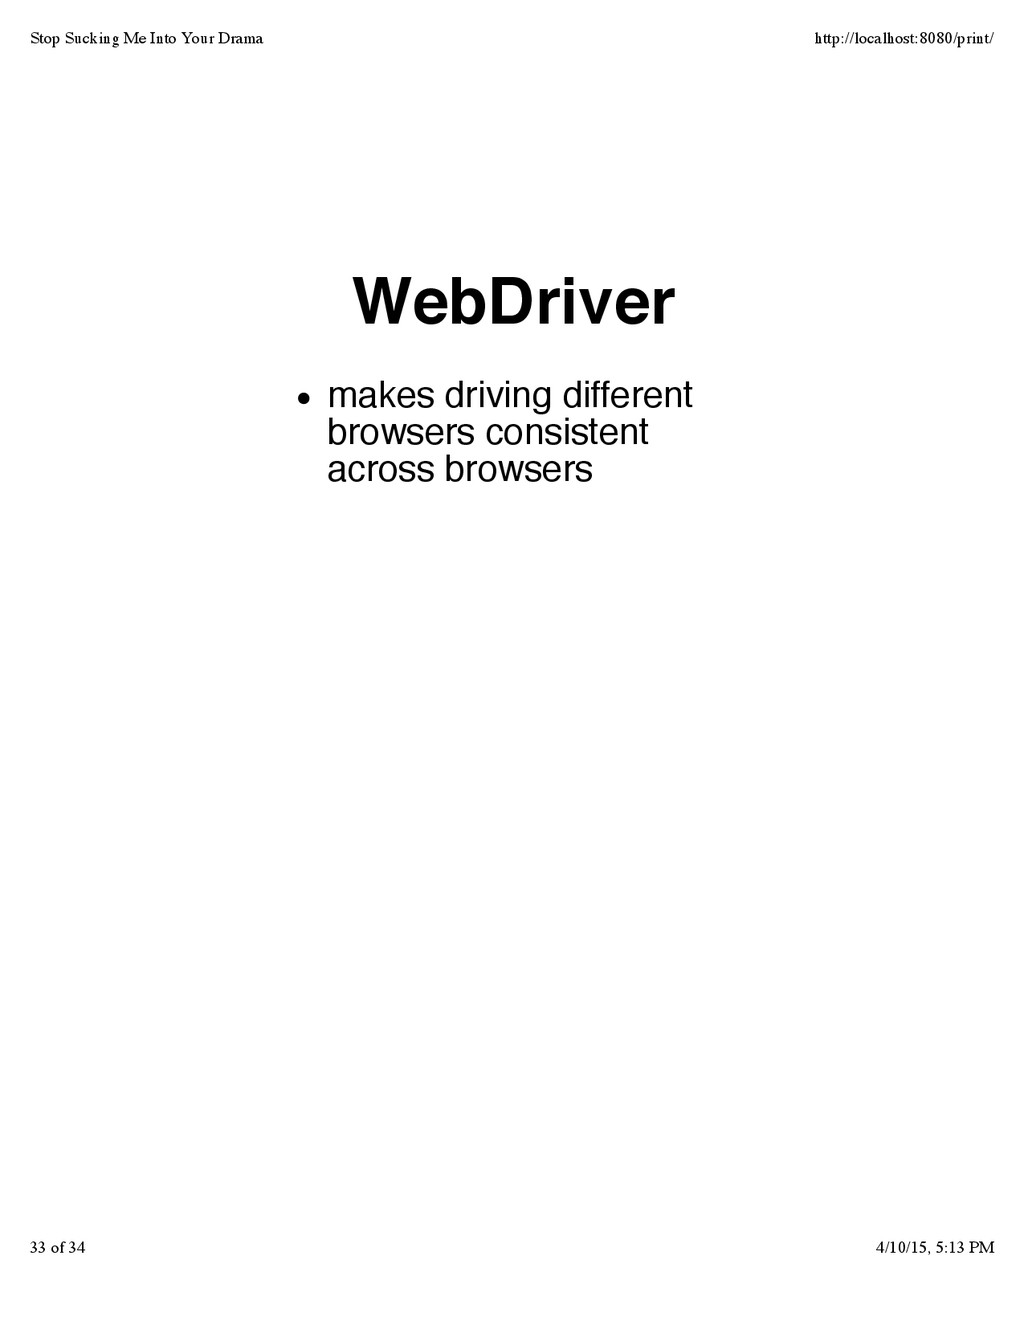 WebDriver makes driving different browsers cons...